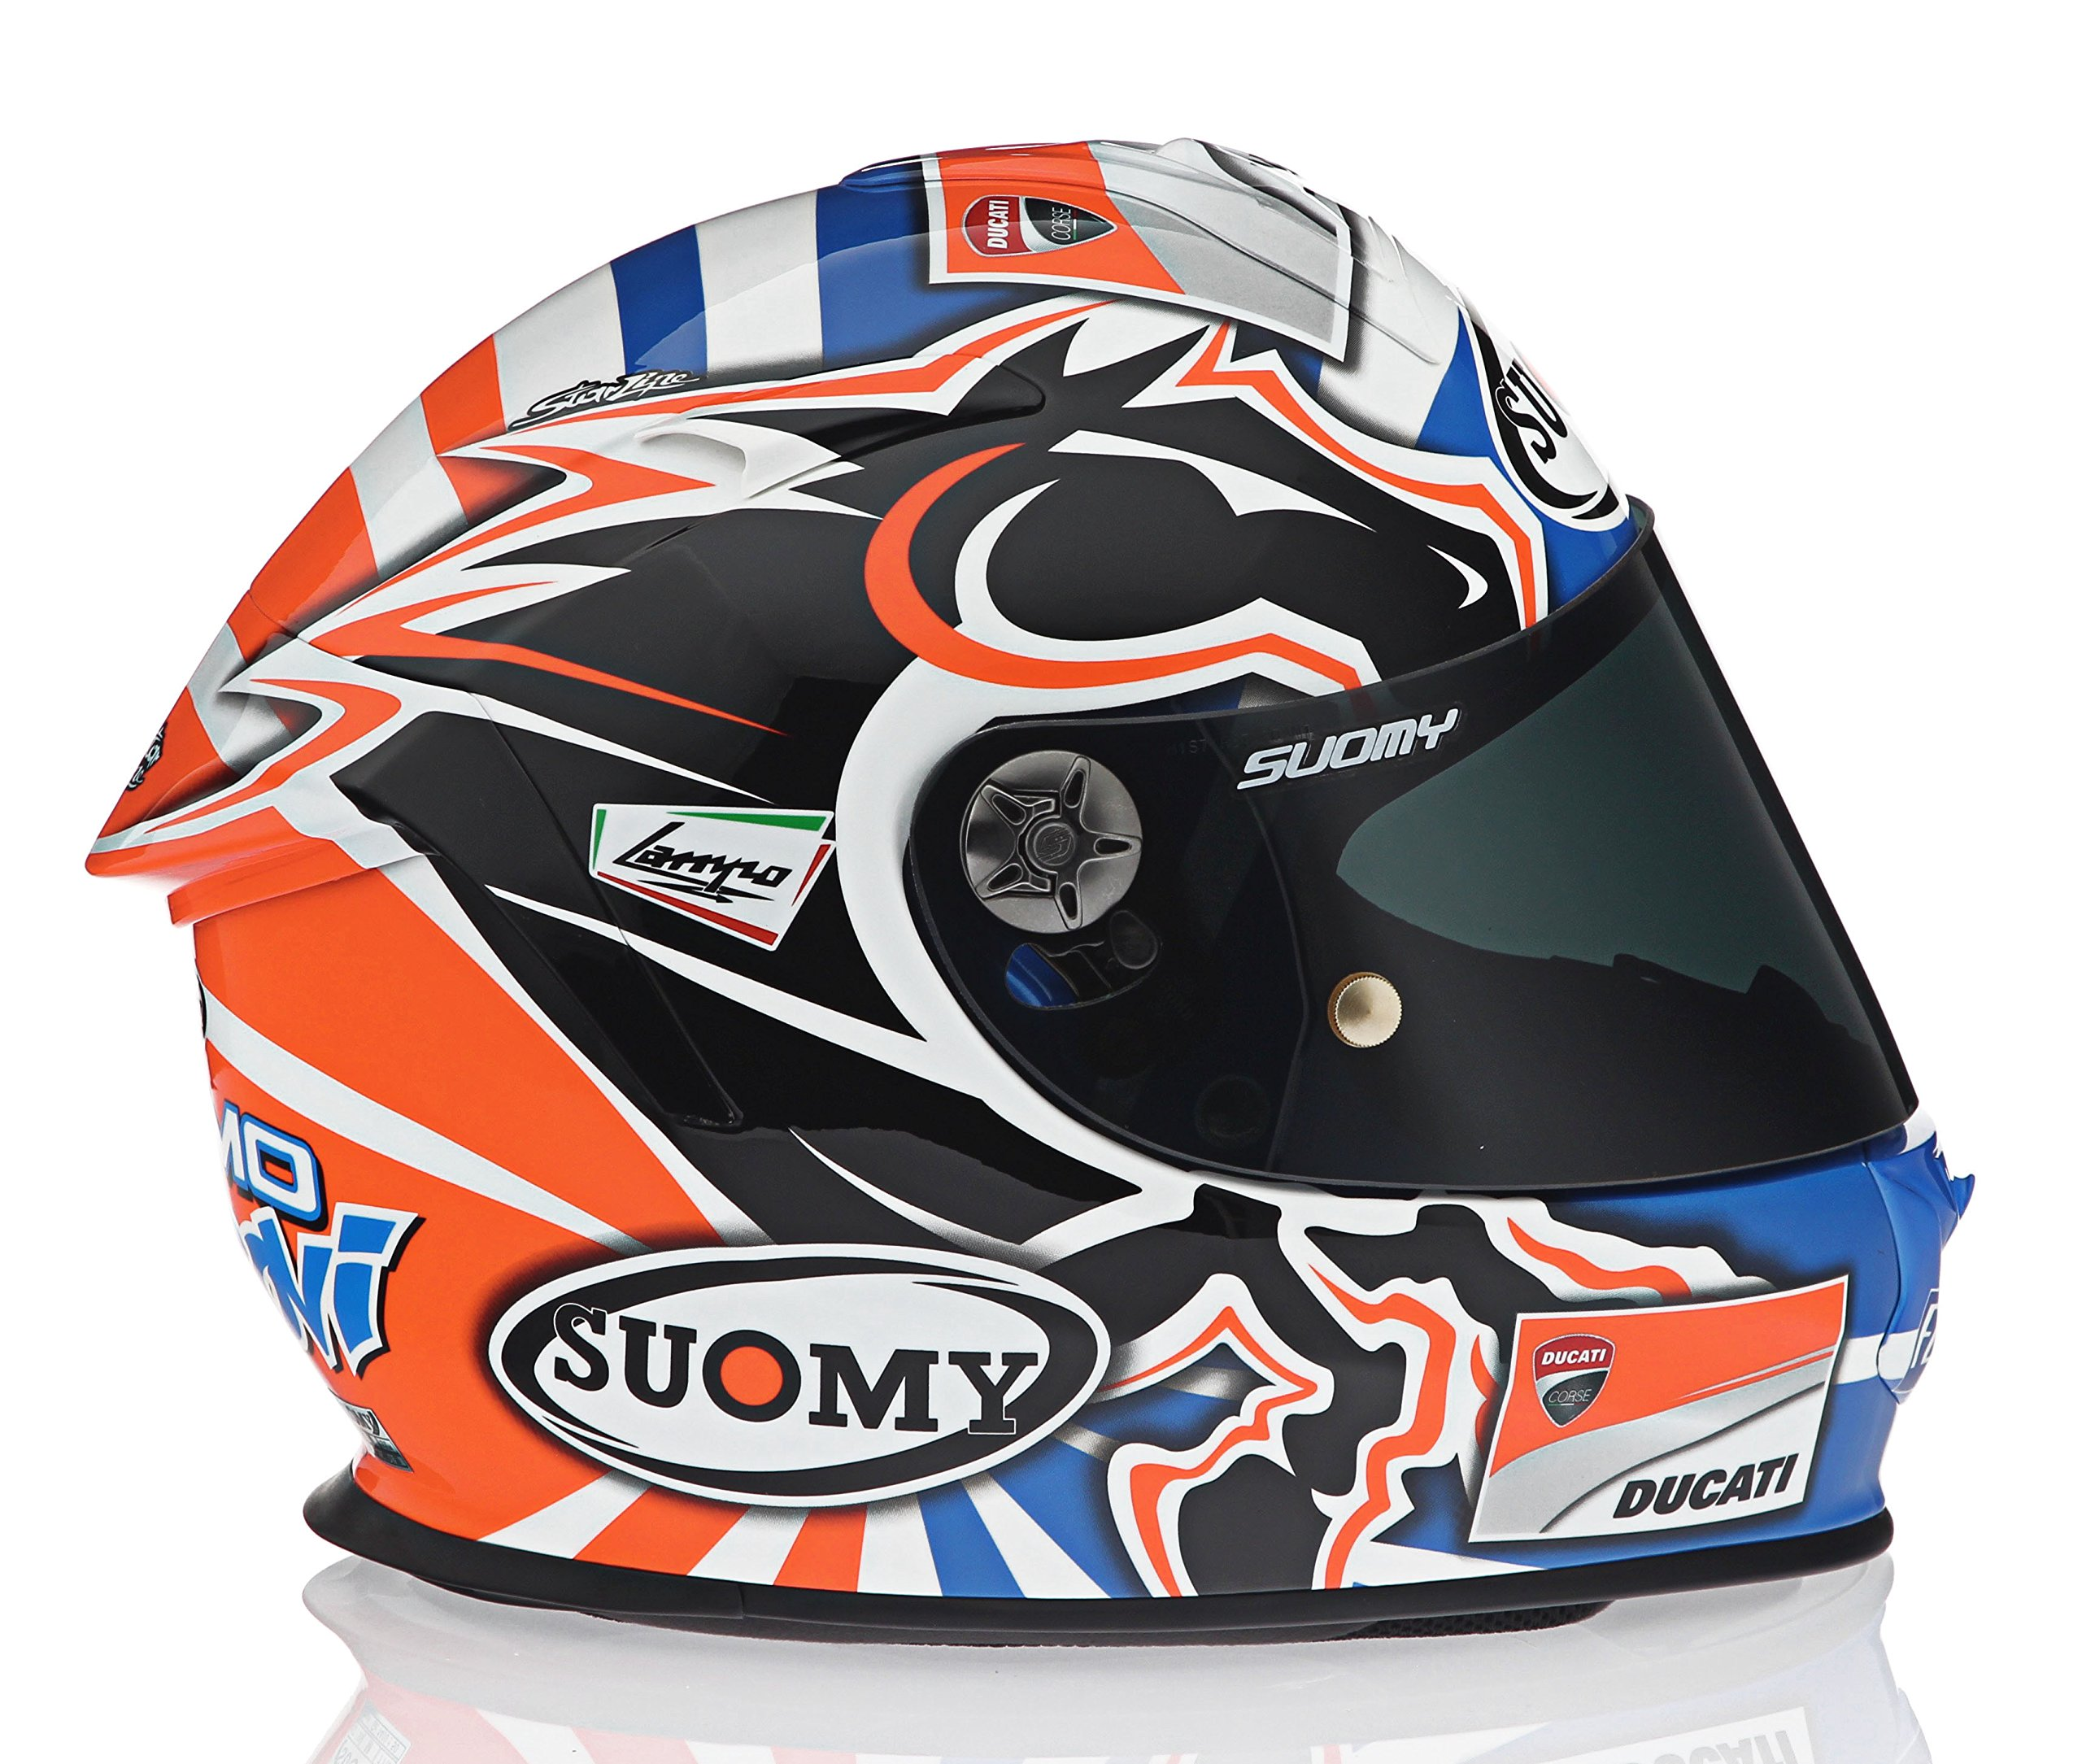 Suomy KTSR0033-MD SR Sport Helmet- DOVI GP DUC Medium by Suomy (Image #3)